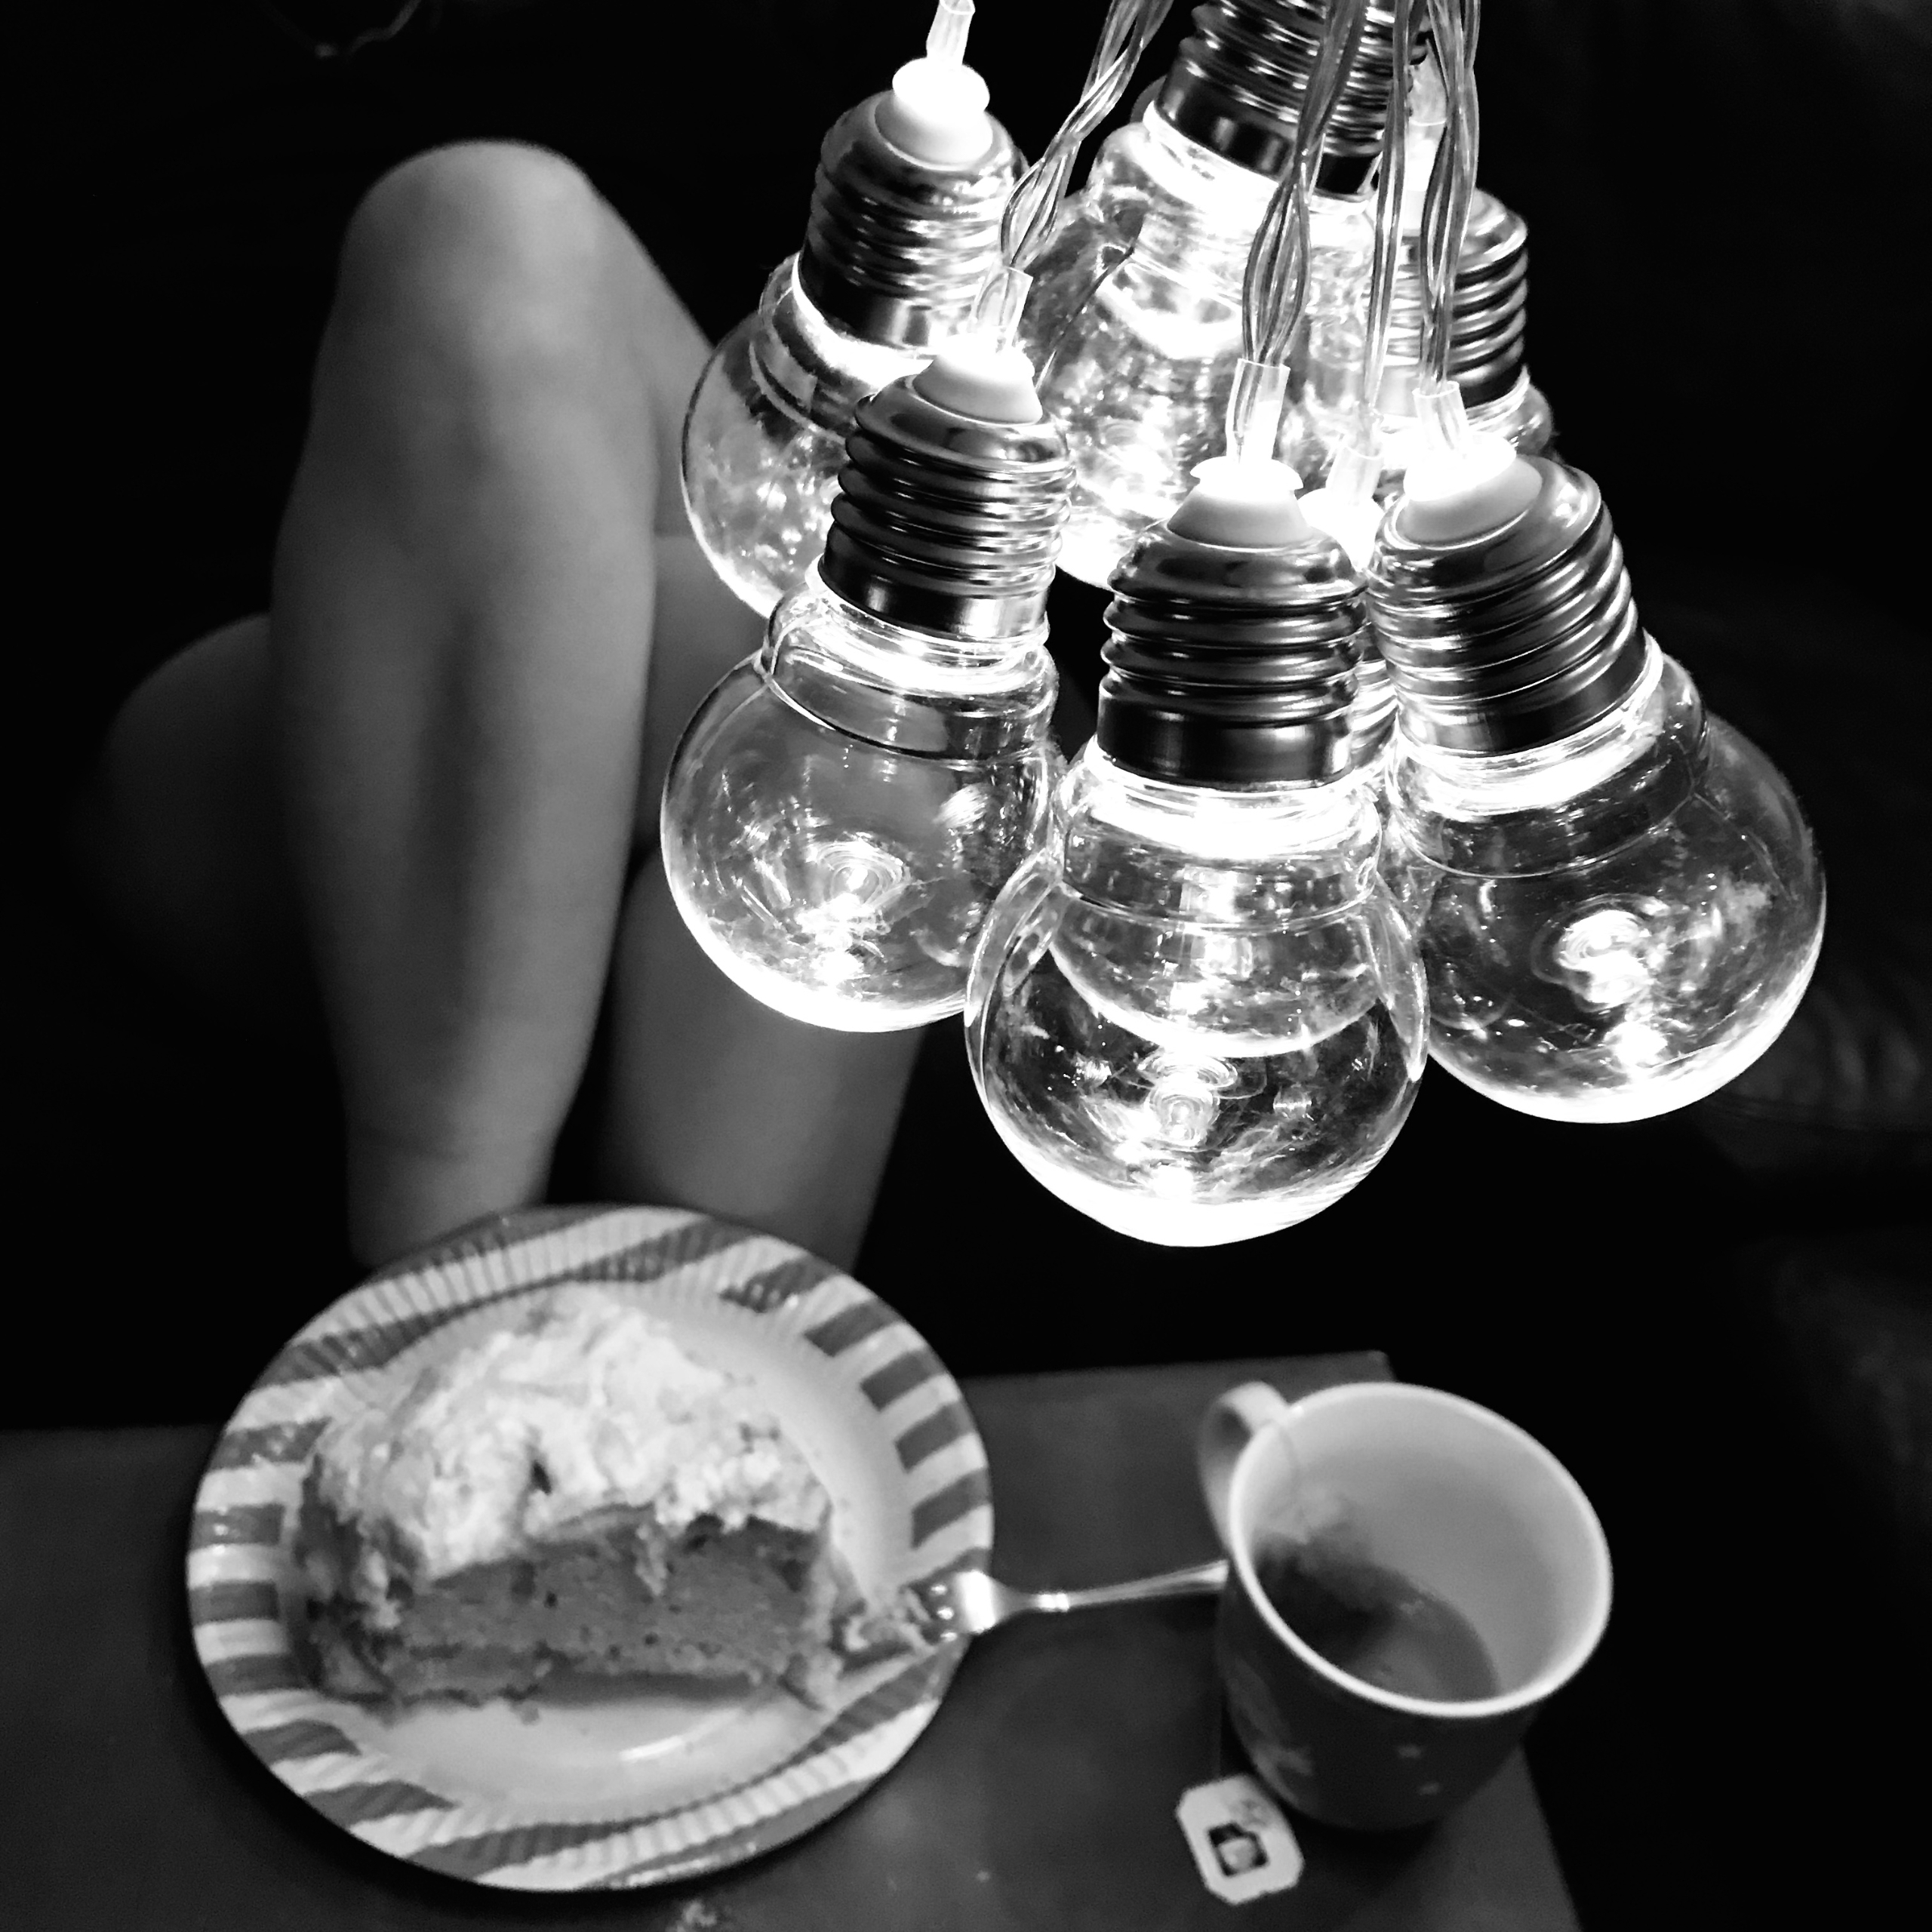 teatime - snapshot, daily, nude - obscure63   ello